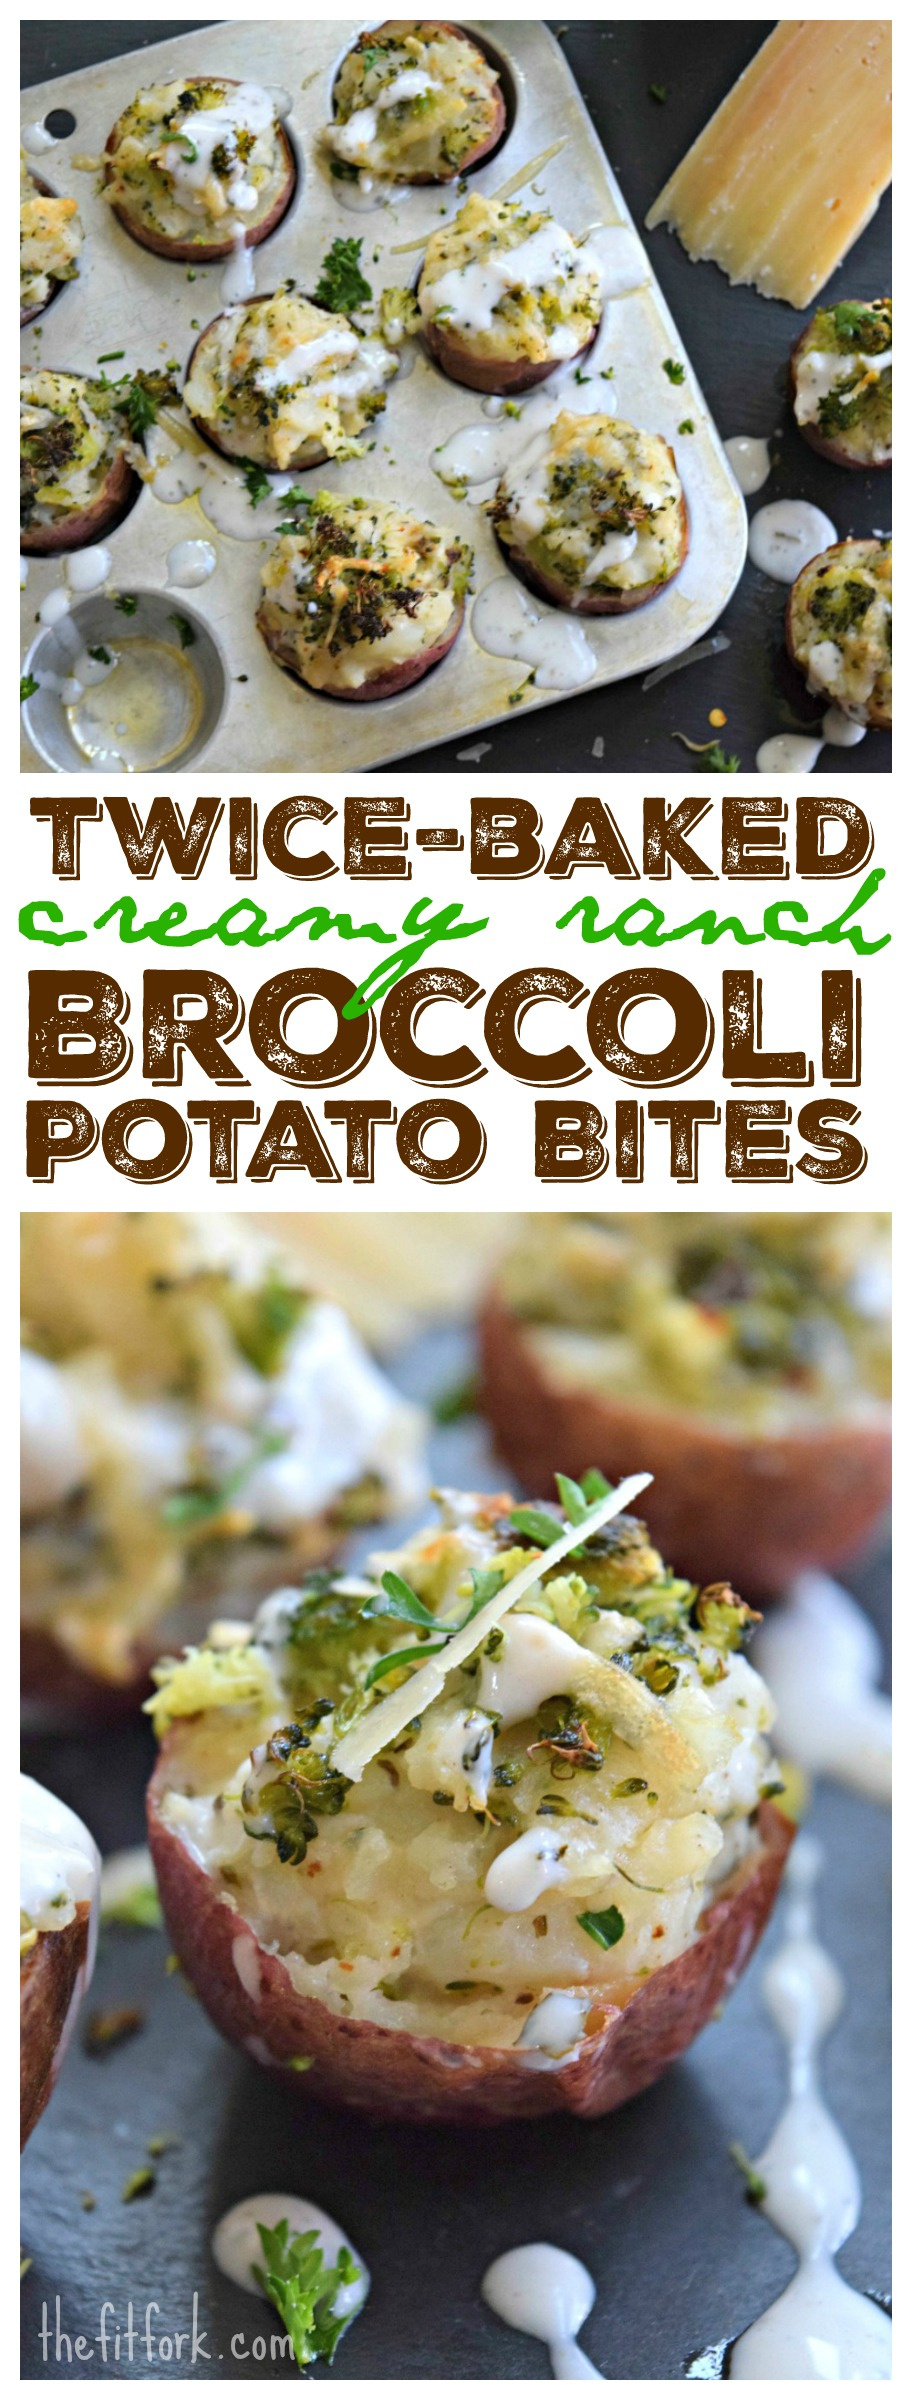 Twice Baked Creamy Ranch Broccoli Potato Bites make a yummy side dish (especially when you don't want a whole big baked potato) or easy party appetizer.